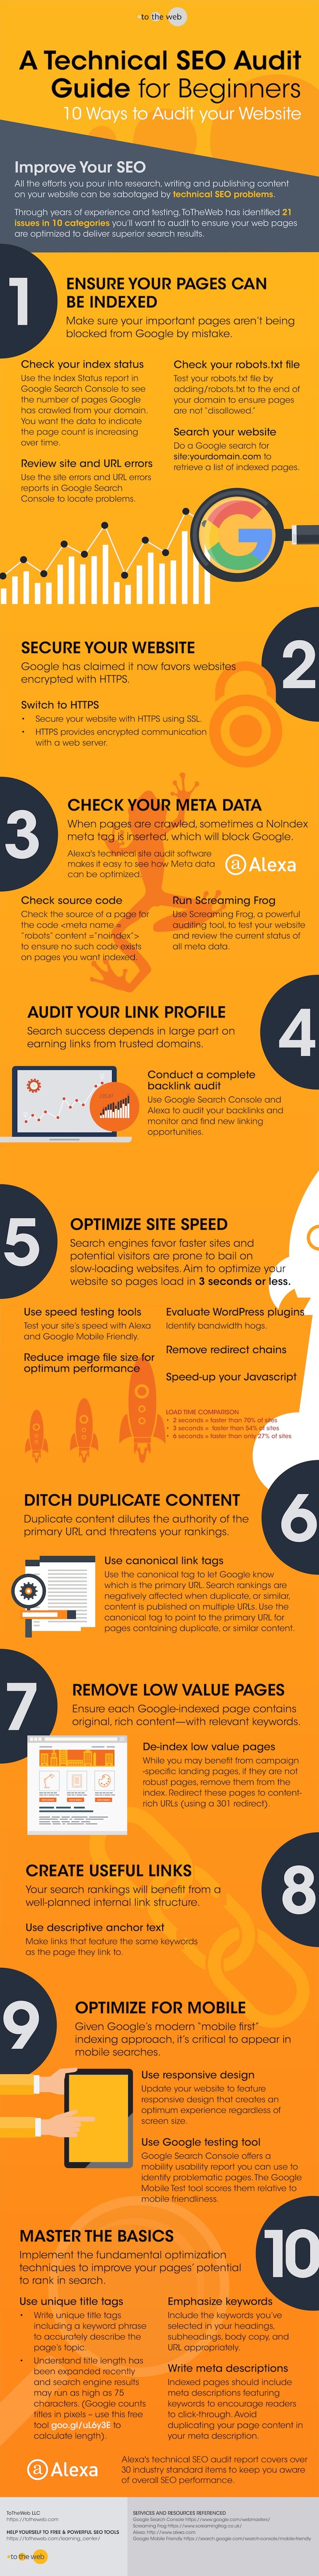 A Technical SEO Audit Checklist to Improve Google Search [Infographic] | Social Media Today